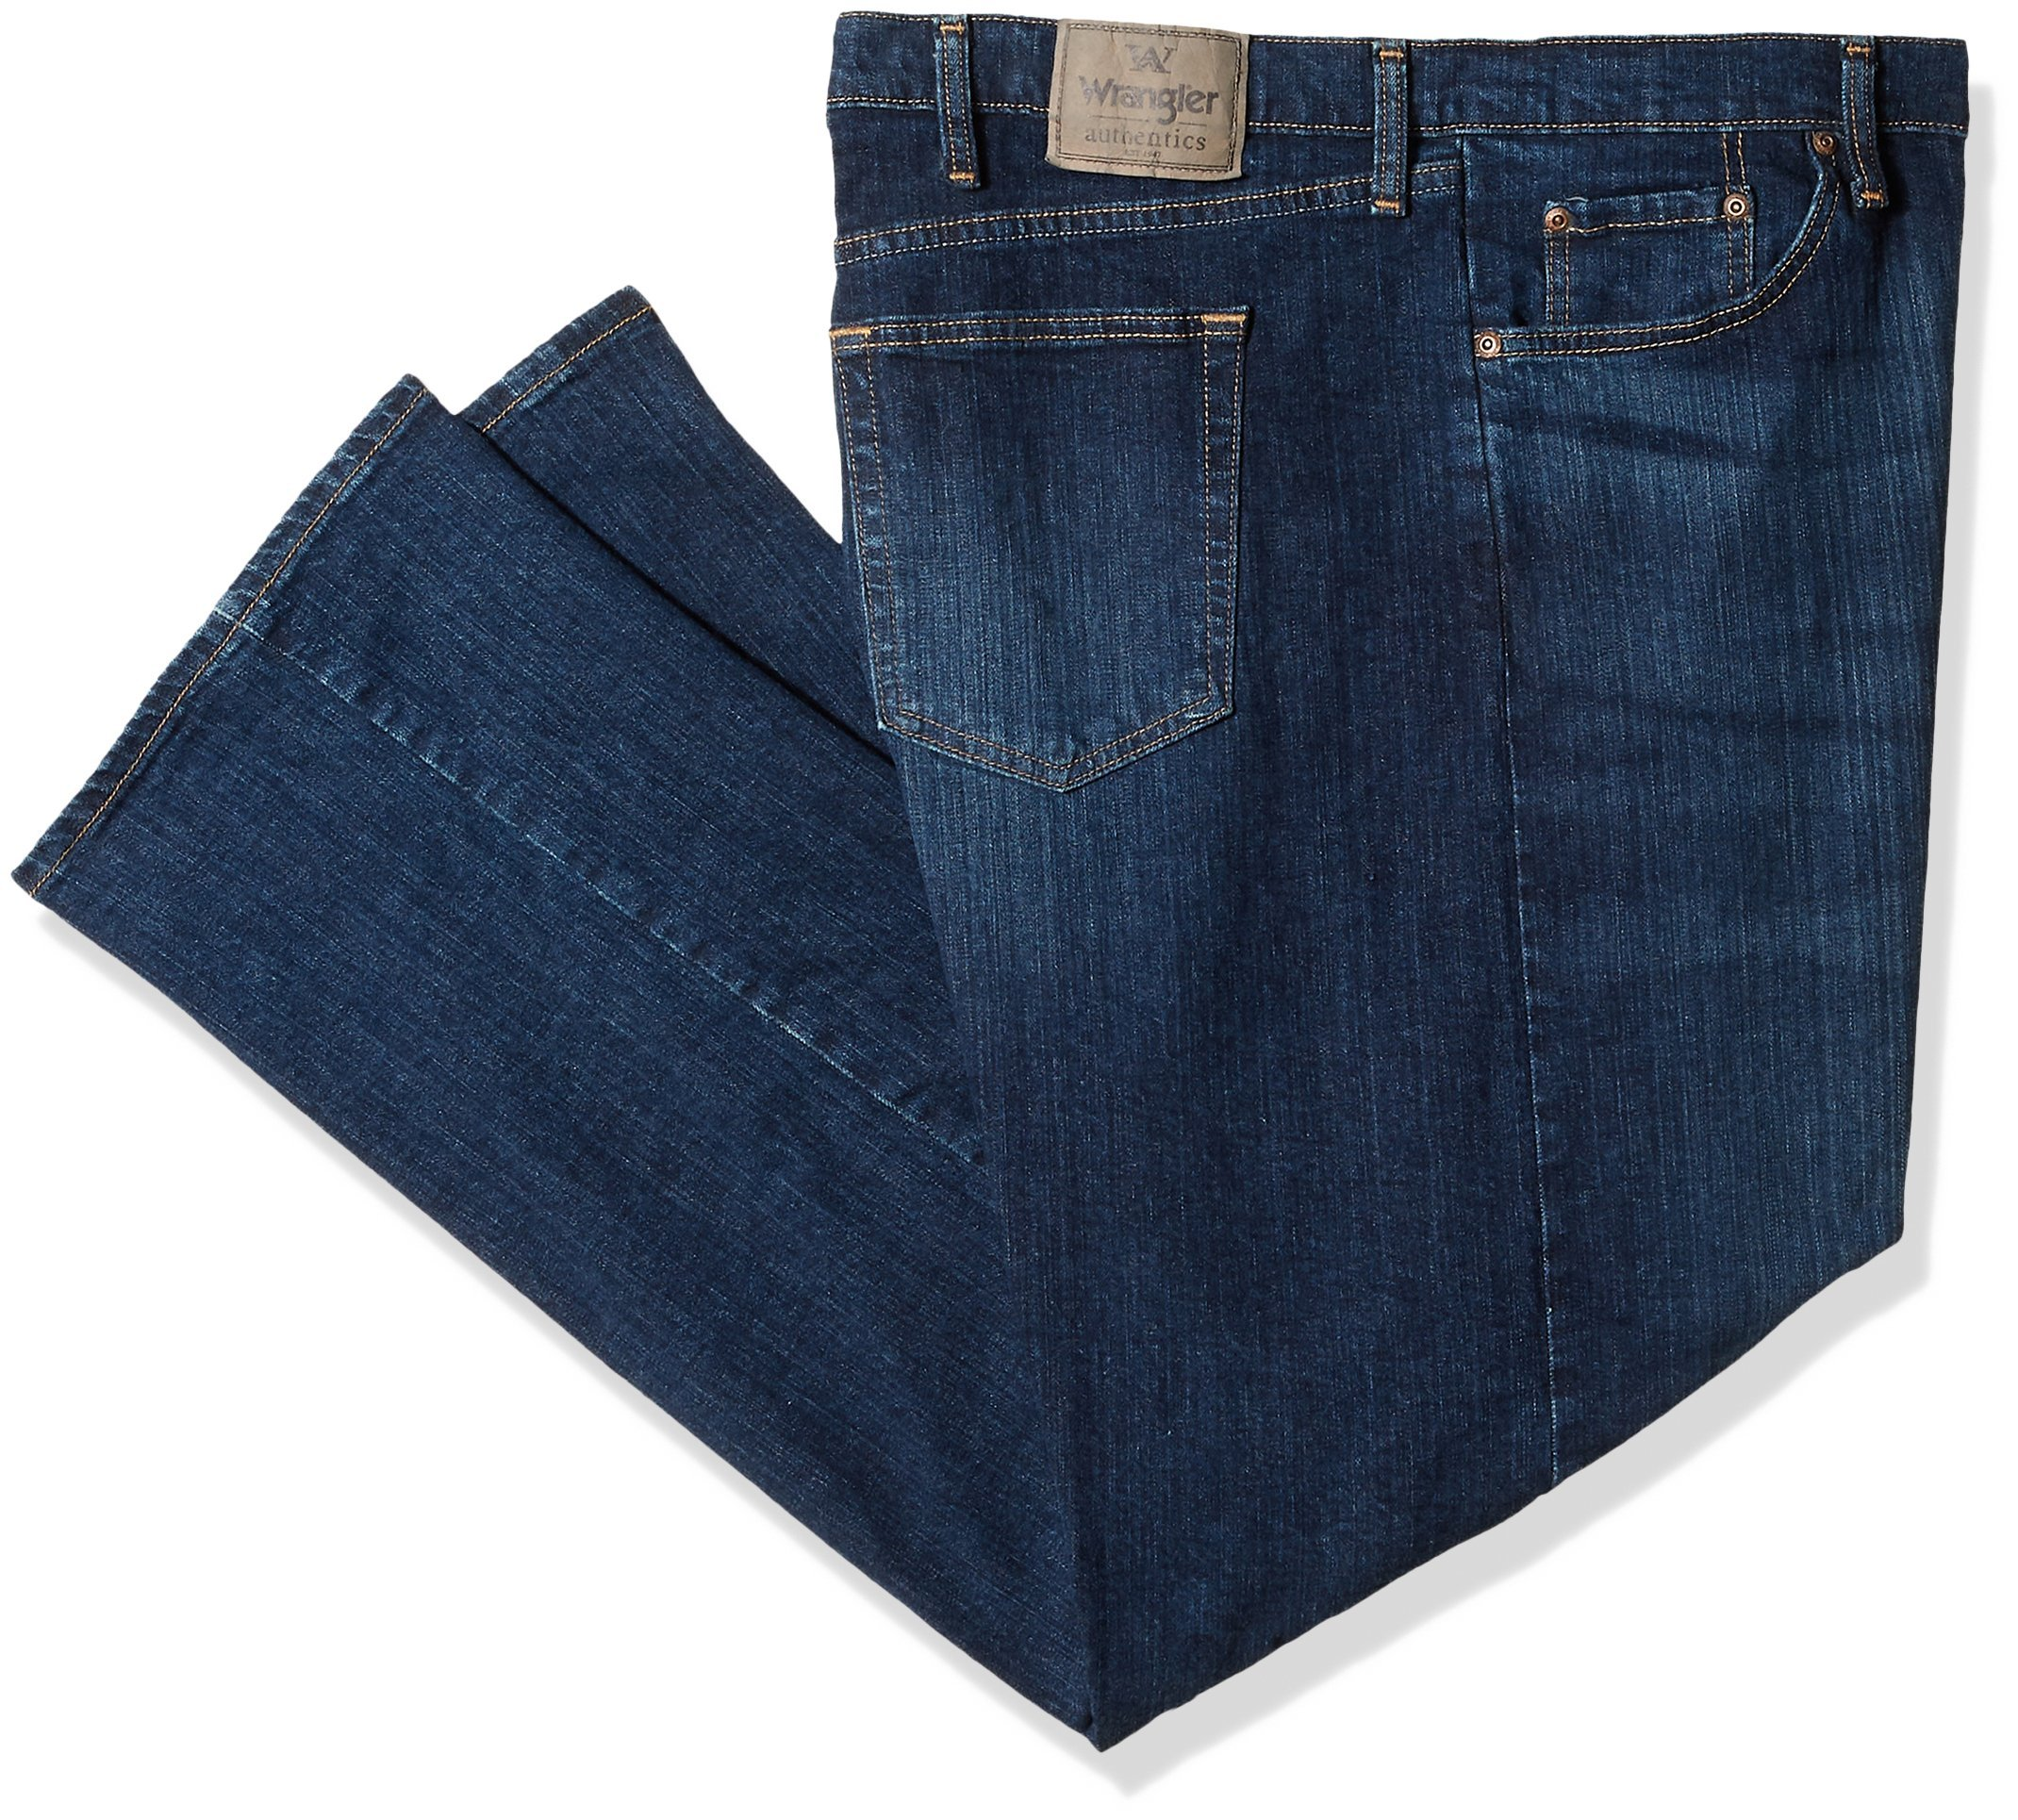 Wrangler Authentics Men's Big and Tall Classic Relaxed Fit Jean